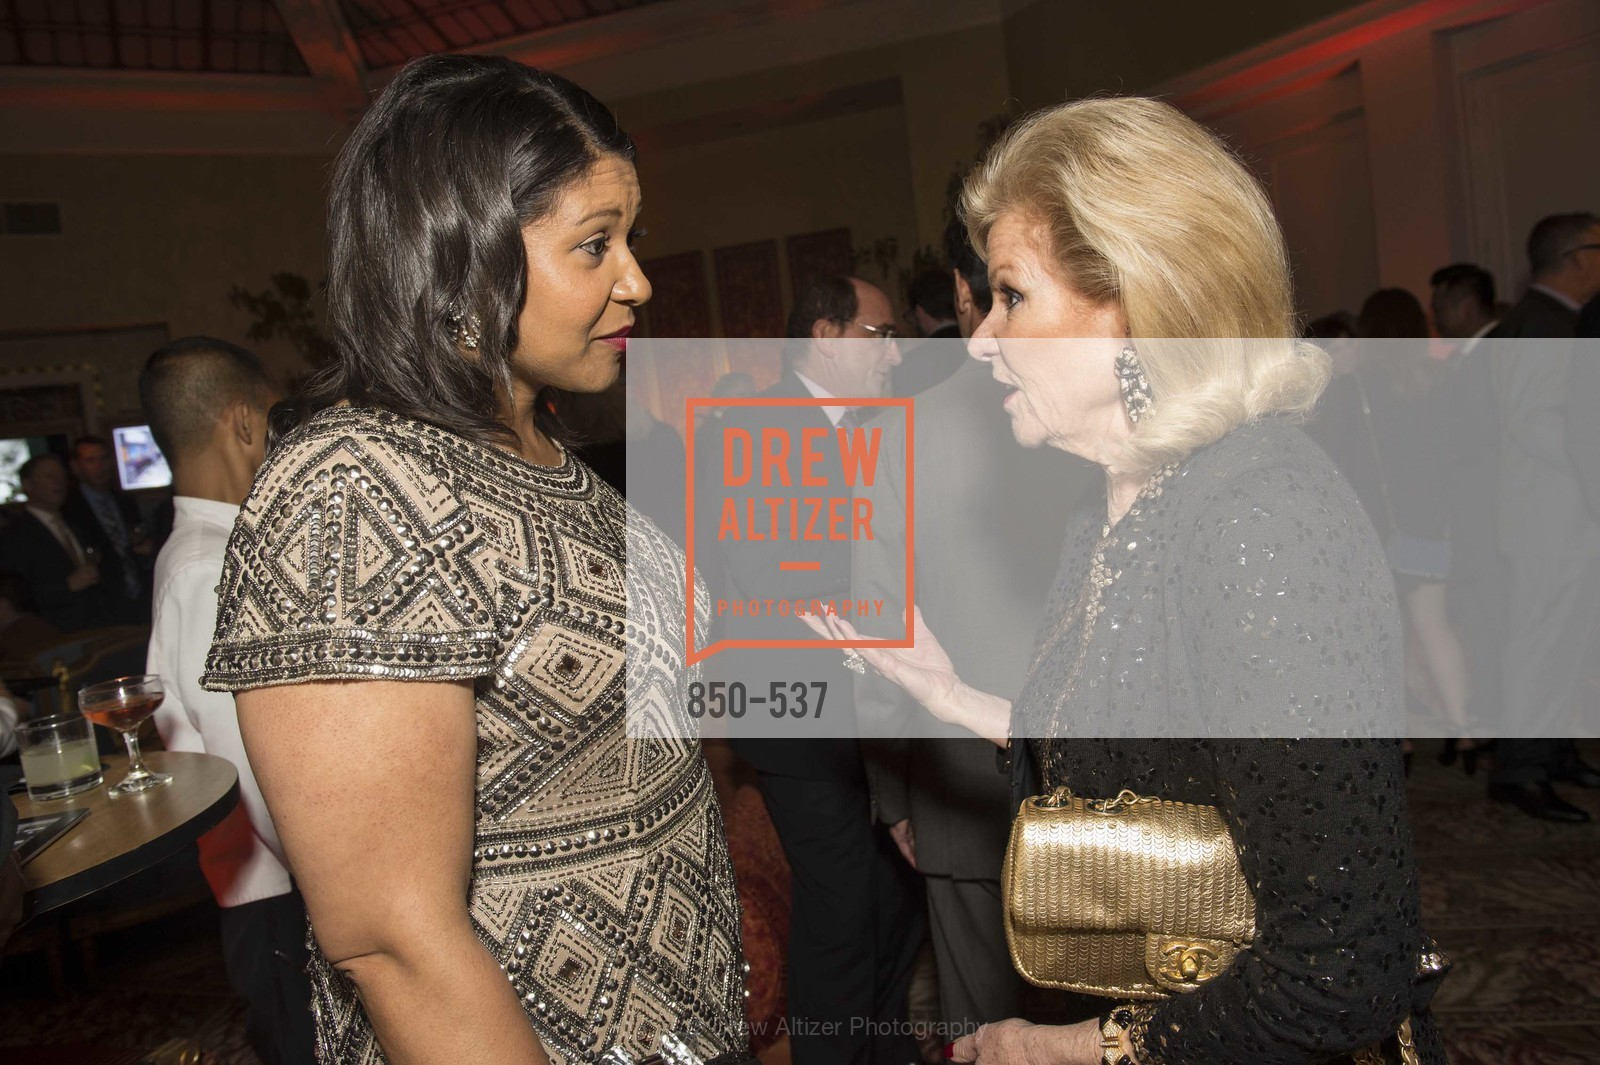 London Breed, Dede Wilsey, TOP OF THE MARK'S 75TH Anniversary Party, US, November 7th, 2014,Drew Altizer, Drew Altizer Photography, full-service agency, private events, San Francisco photographer, photographer california